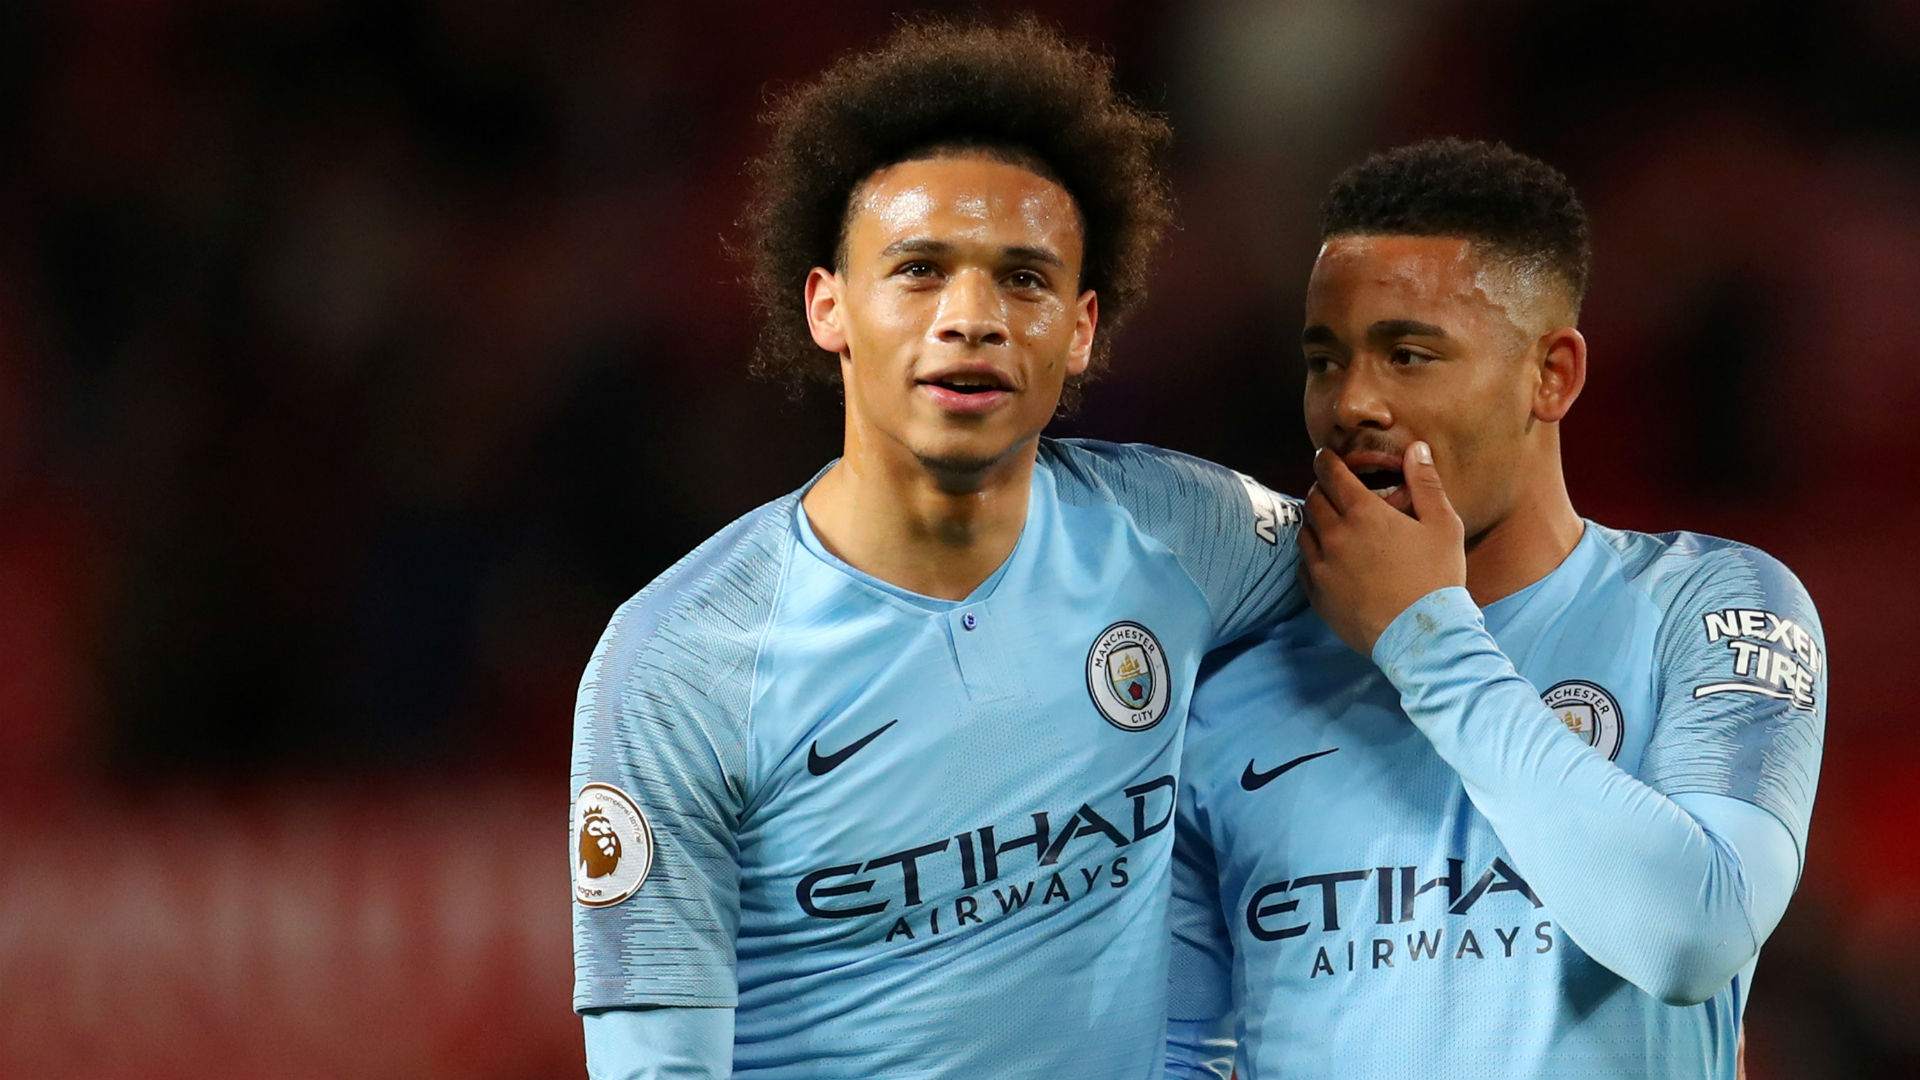 Manchester City 'TURN DOWN £70m bid for Leroy Sane' from Bayern Munich